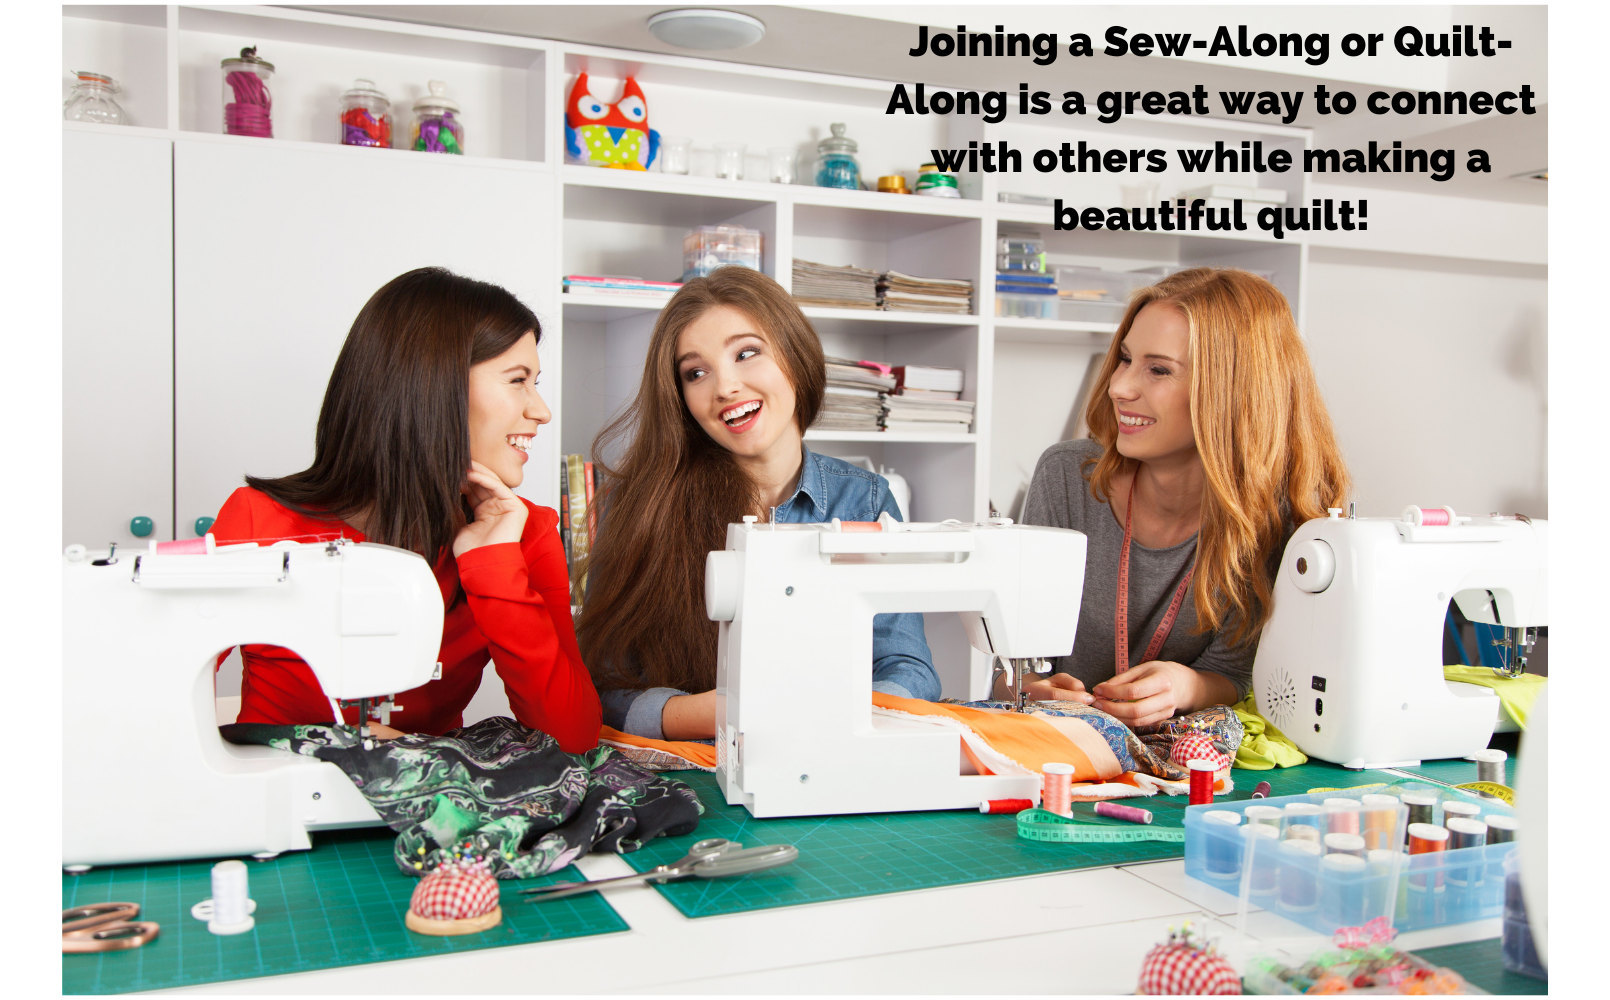 Joining a Sew-Along or Quilt Along is a great way to connect with other quilters while also making a beautiful quilt. This image shows three ladies laughing and having fun while they sew their quilts.